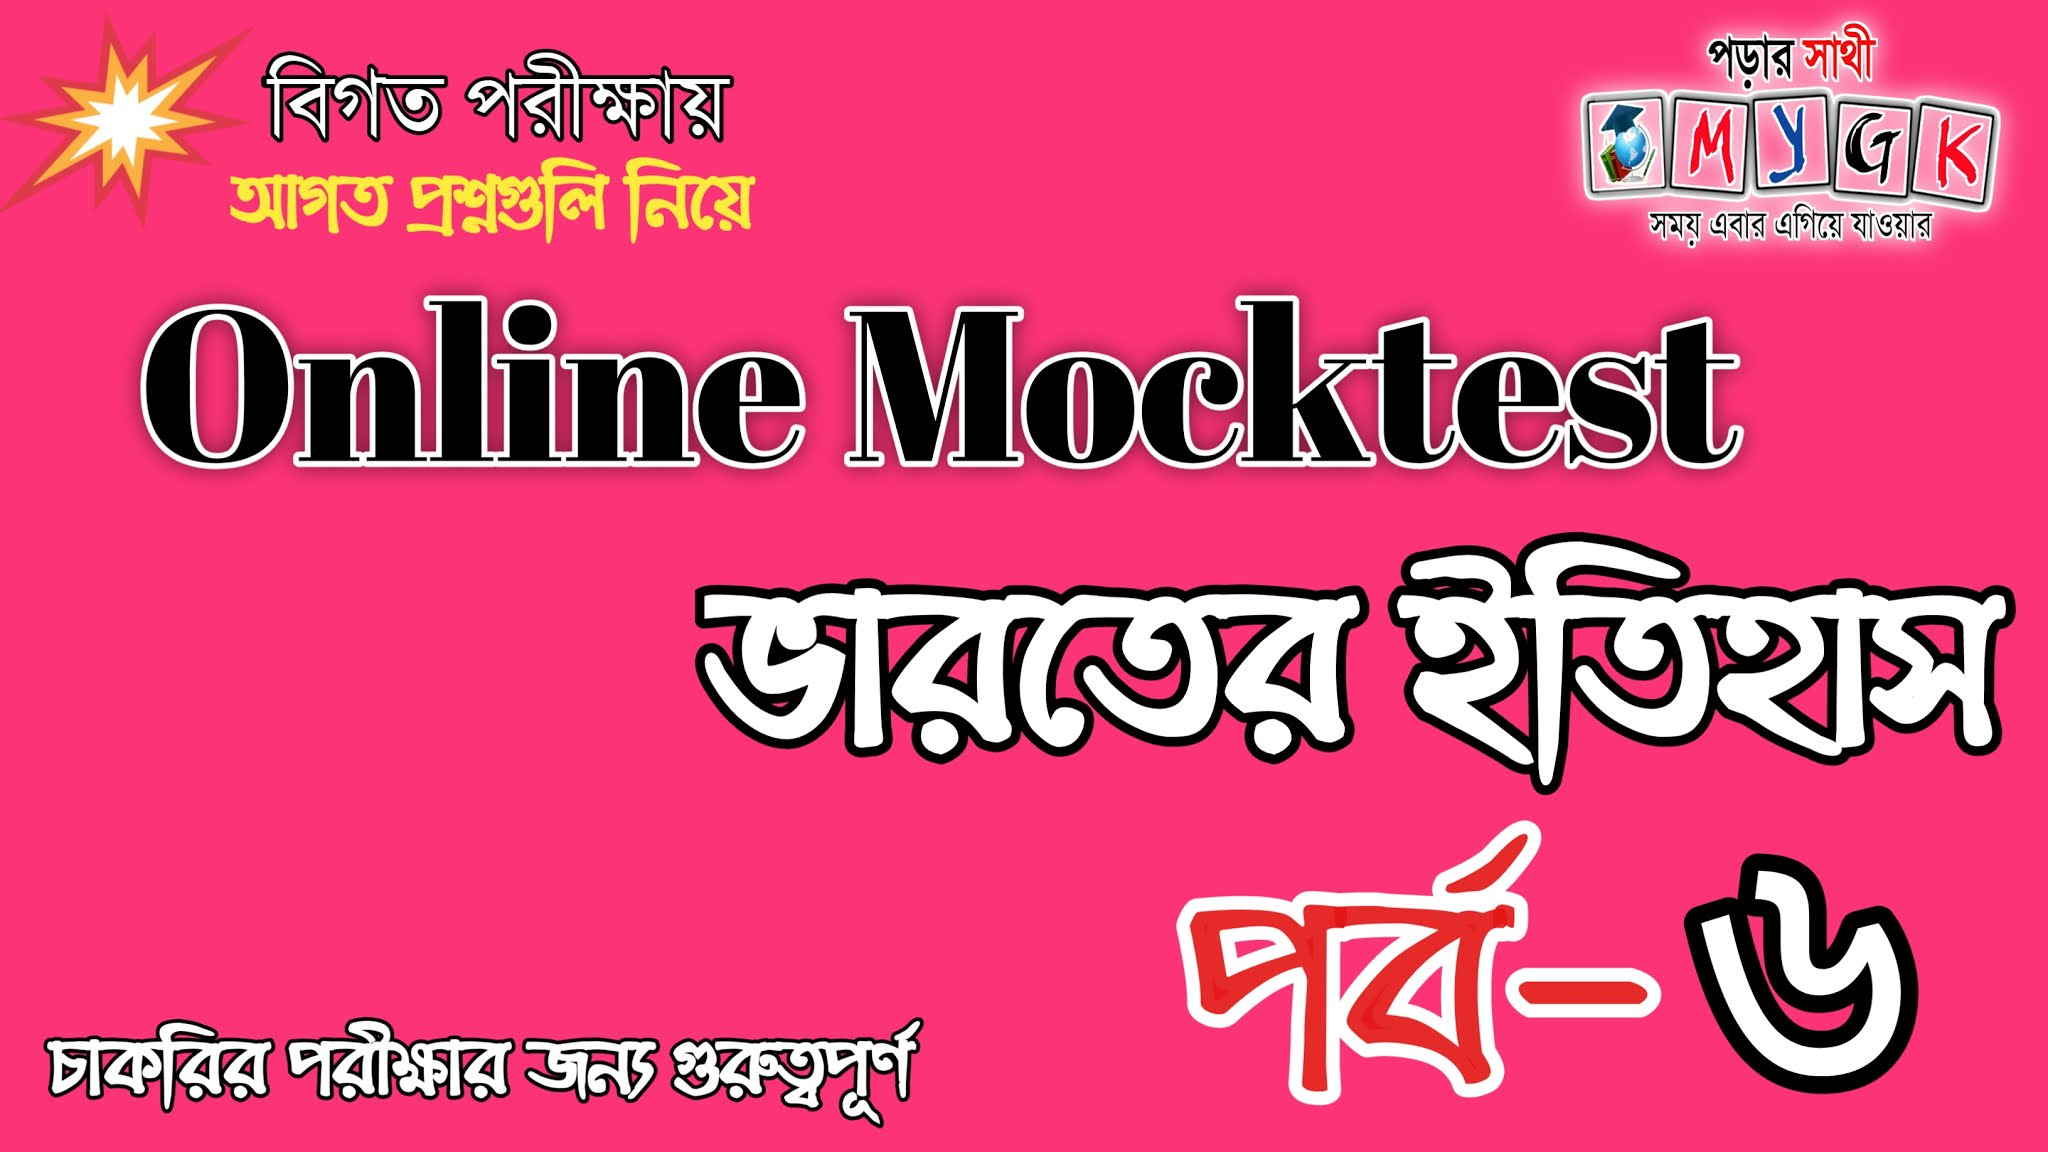 Online Mocktest On History in Bengali (Part-6) For All Competitive Exams || অনলাইন মকটেস্ট -ইতিহাস